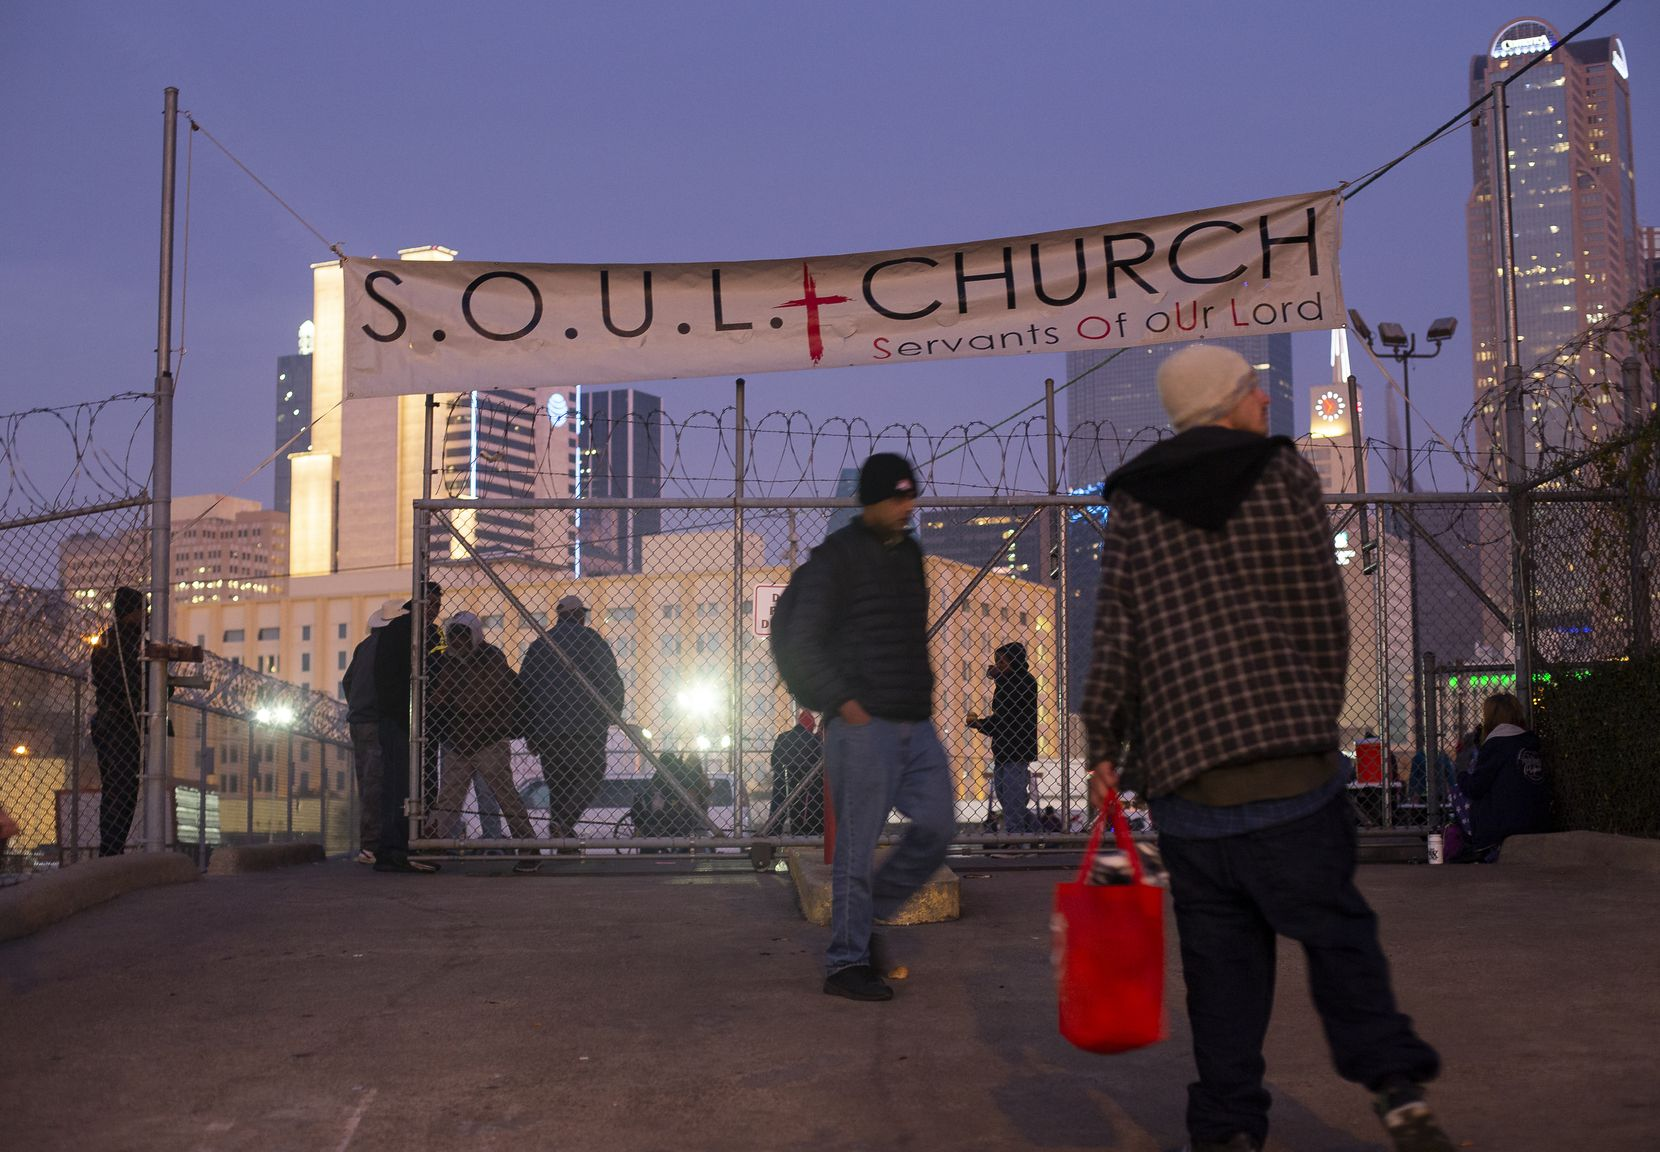 For the past 12 years, S.O.U.L. Church, an open-air congregation, met on the corner of St. Paul and Corsicana streets, until the church's final service on the lot in December.